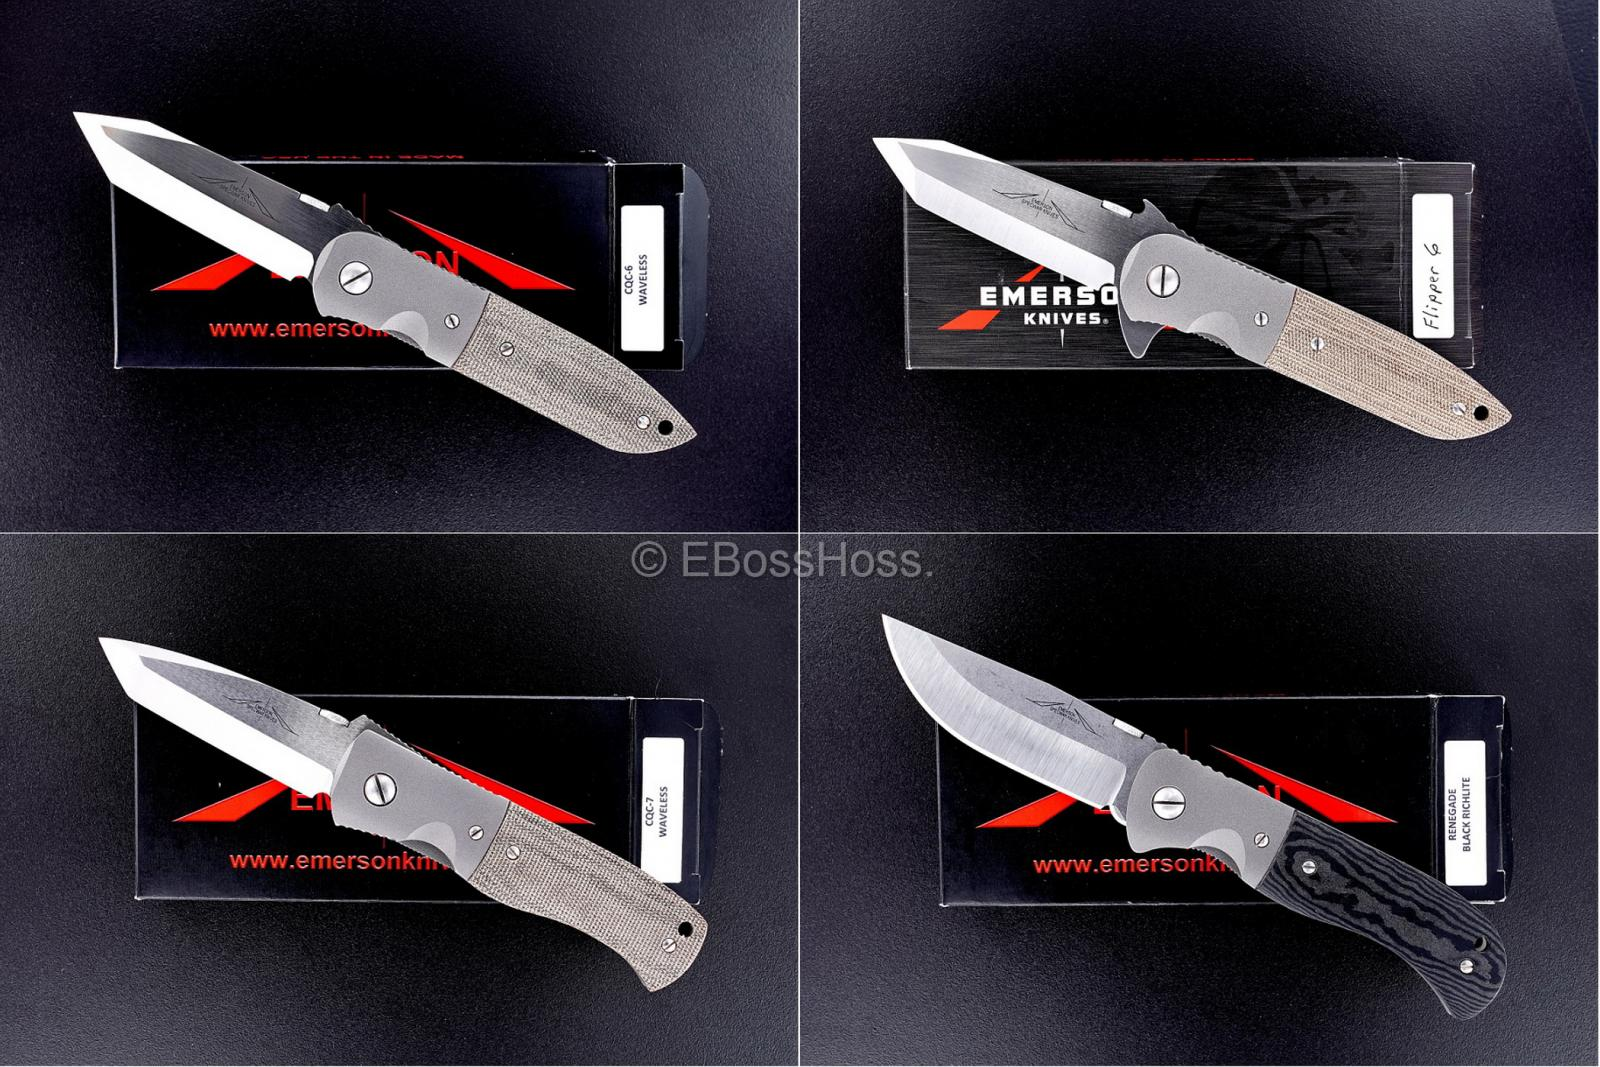 Ernie Emerson Very Desirable Custom (Specwar Knives Logo) Folders